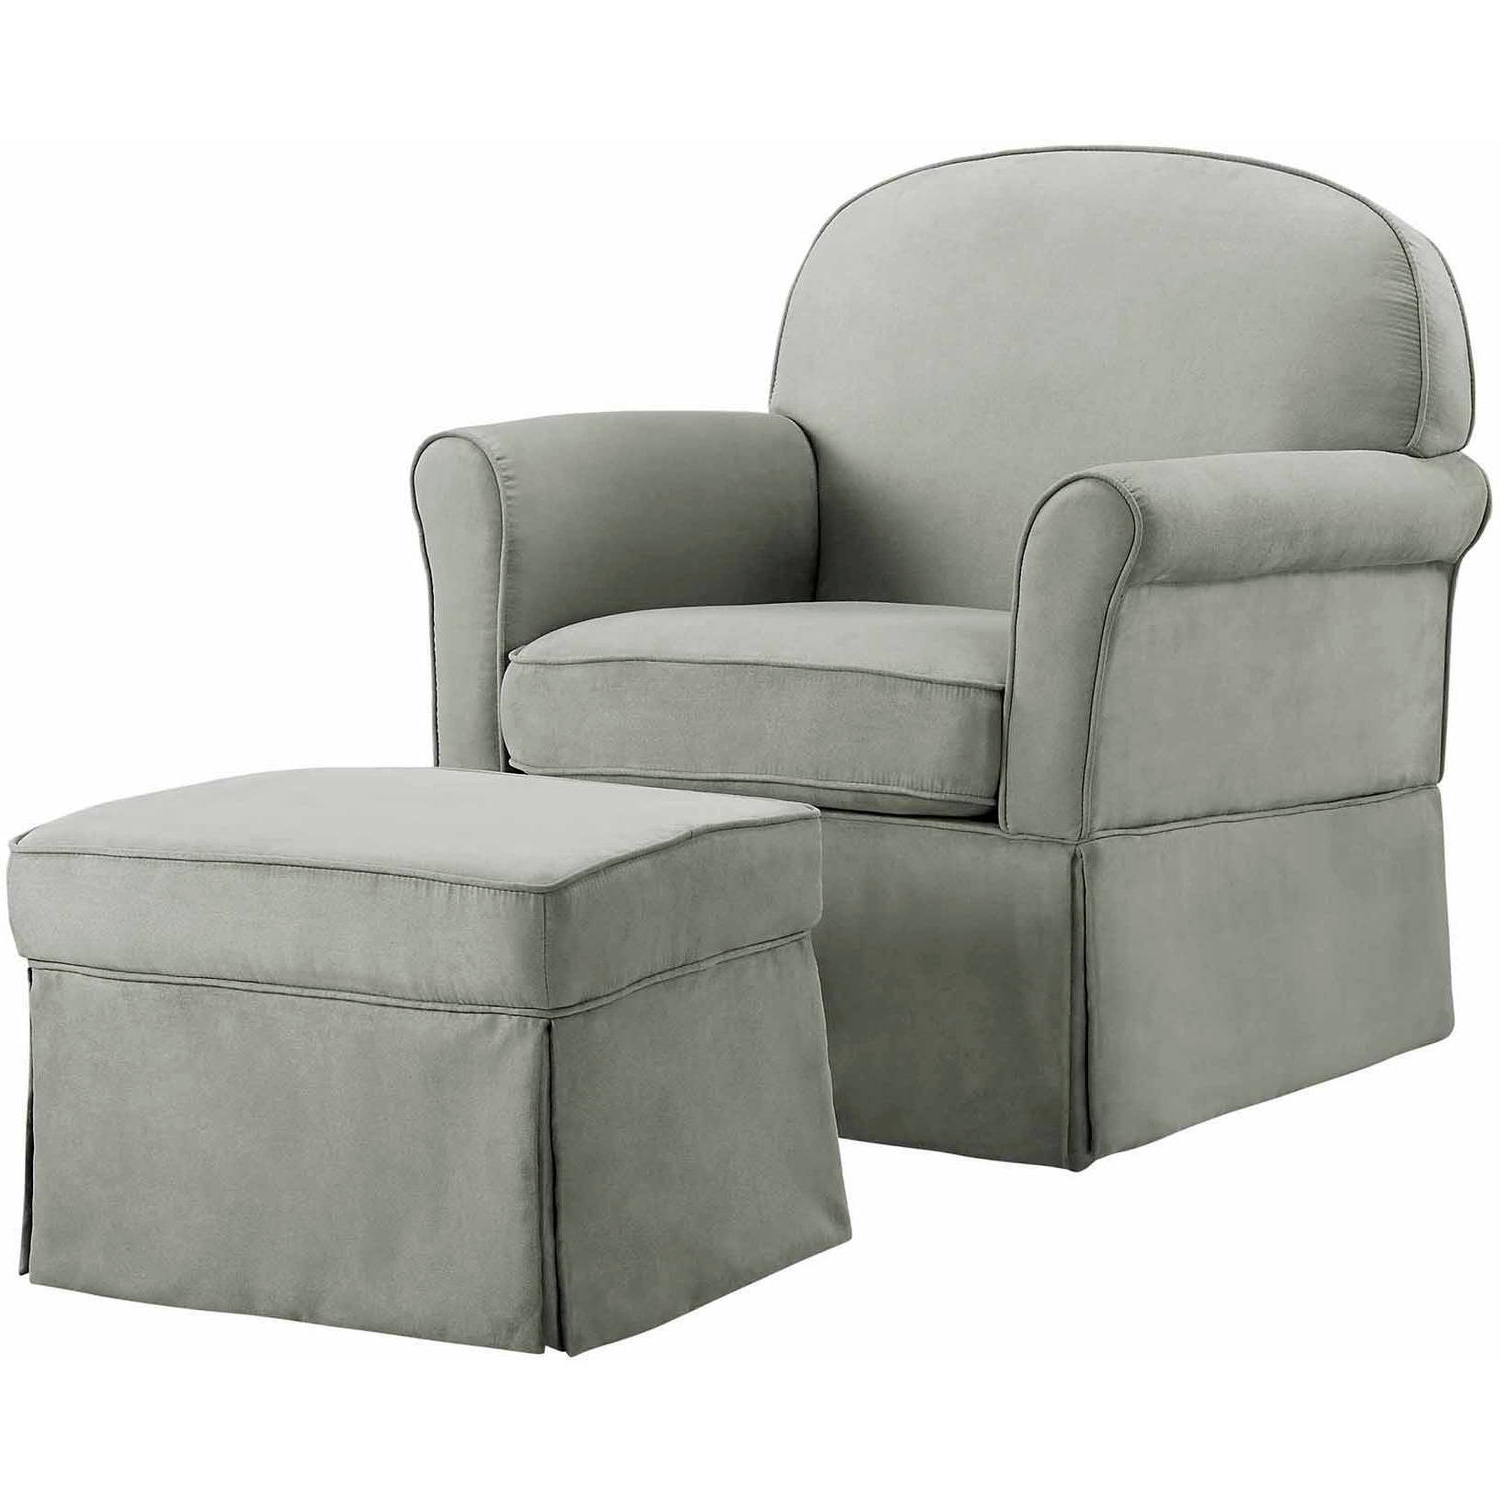 Gliders With Ottoman With Best And Newest Baby Relax Evan Swivel Glider And Ottoman Gray – Walmart (View 6 of 15)